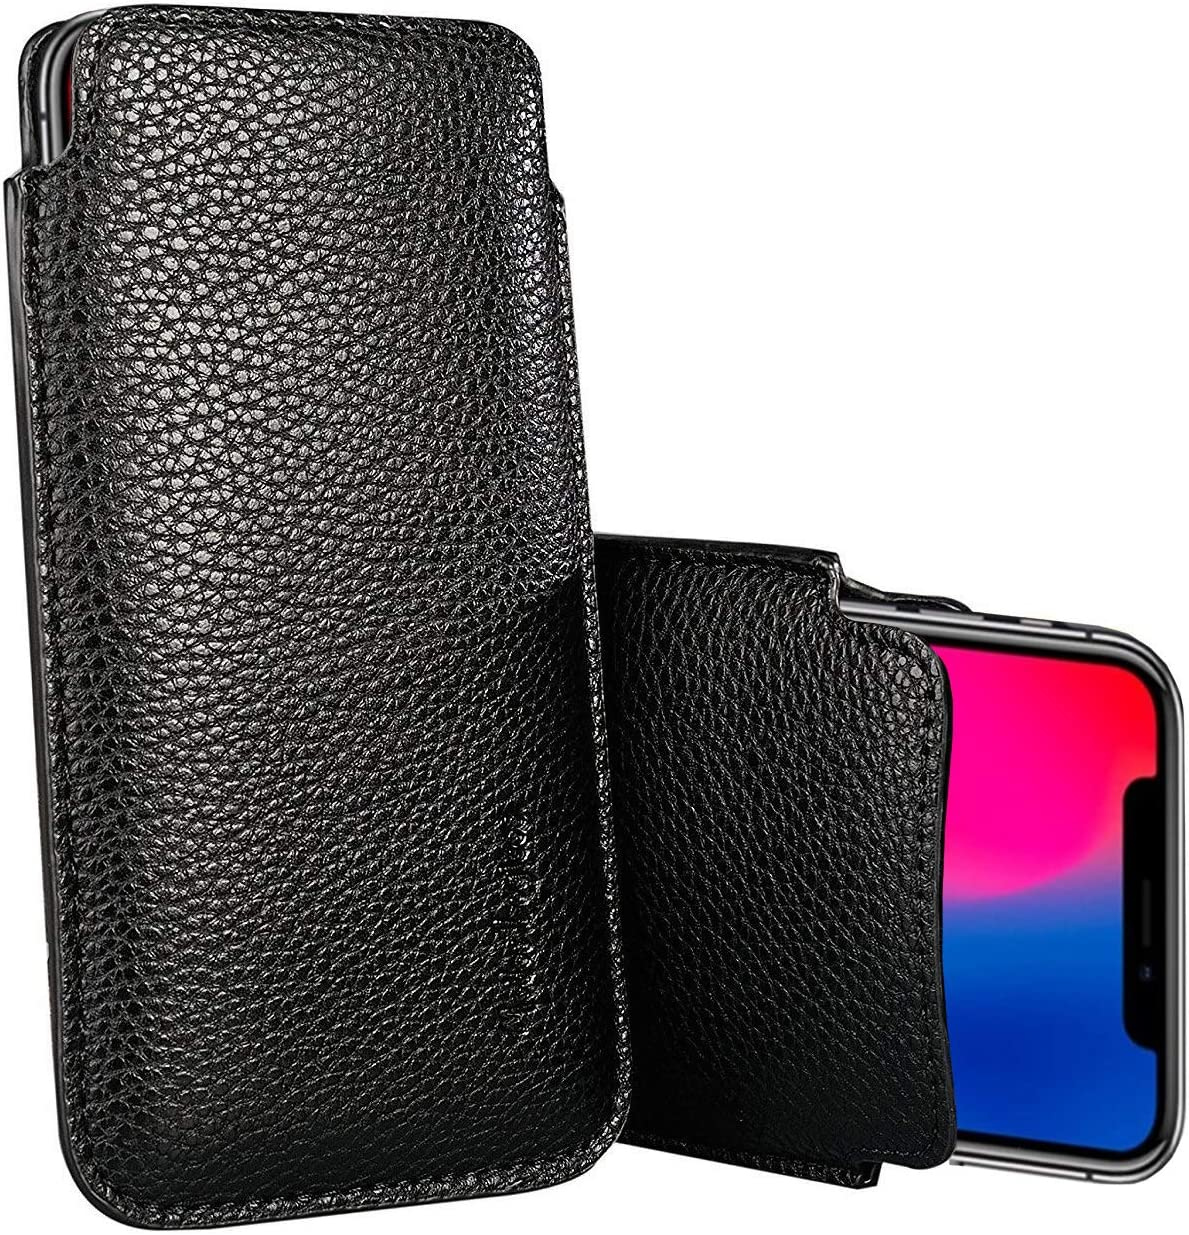 """Apple iPhone XR/iPhone 11 Sleeve, Modos Logicos Synthetic Leather Protective Sleeve Pouch Case for iPhone XR/iPhone 11 6.1"""", Professional Executive Case Design with Elastic Pull Strap - Black"""